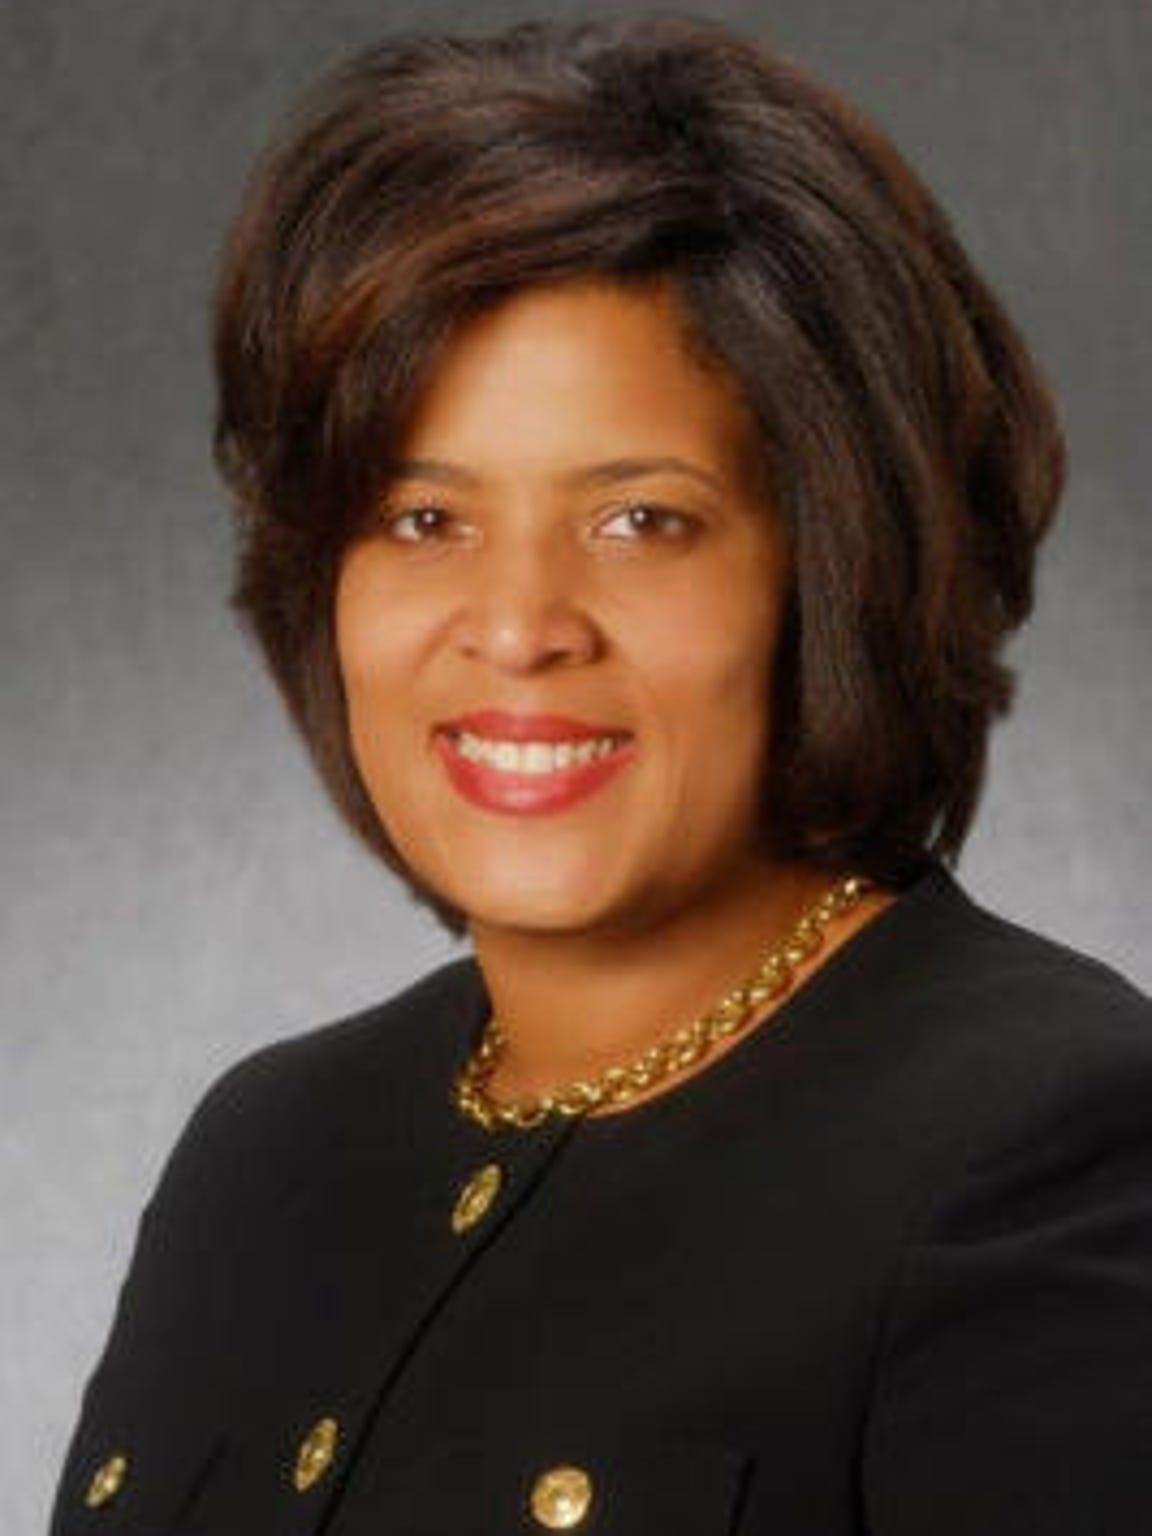 Metro Councilwoman Jacobia Dowell